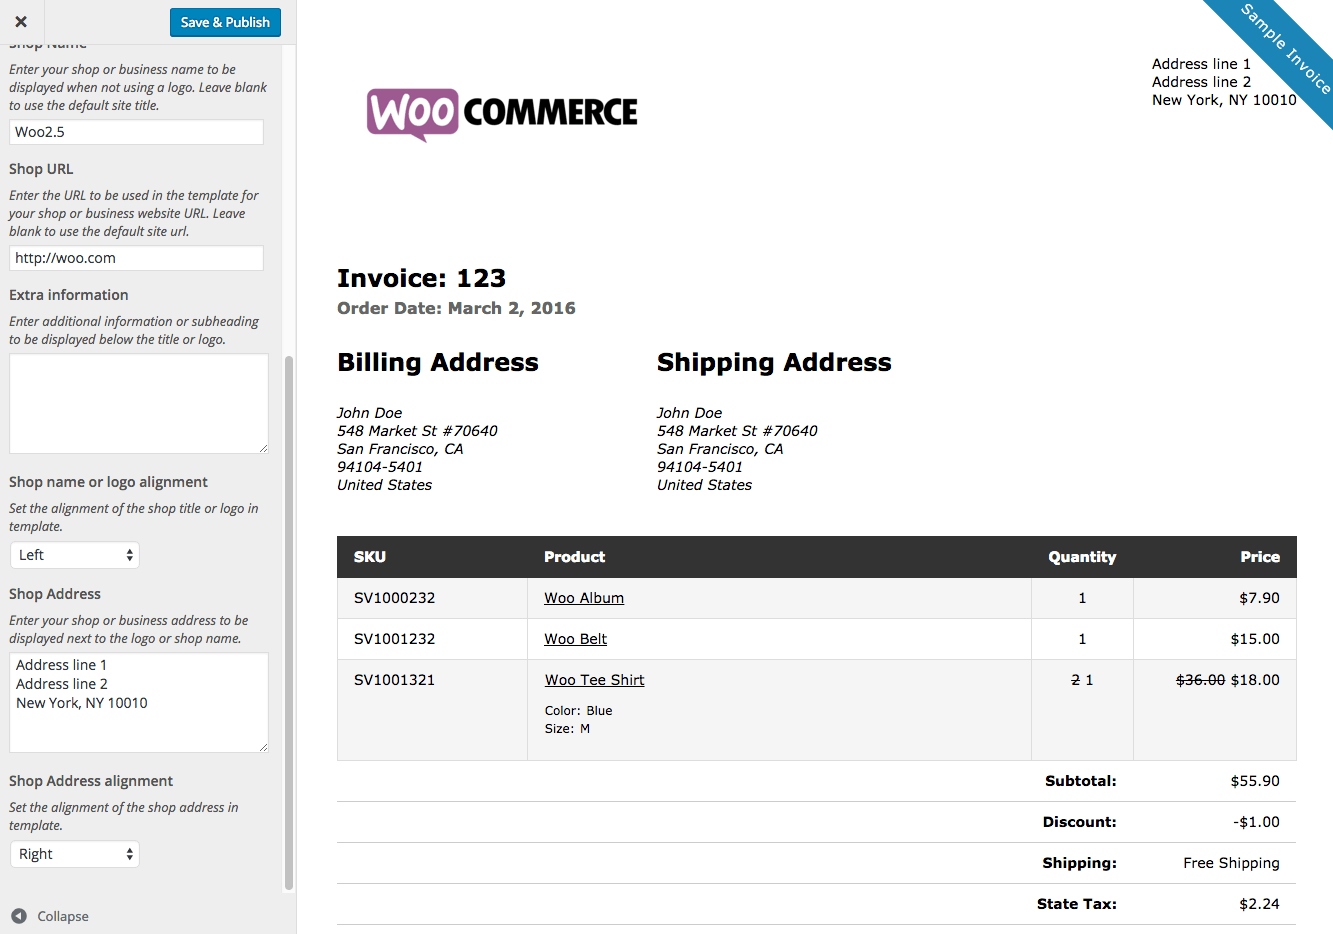 Proatmealus  Pretty Woocommerce Print Invoices Amp Packing Lists  Woocommerce Docs With Lovable Woocommerce Print Invoices  Packing Lists Customizer With Easy On The Eye Cooking Receipts Also Cash Receipt Voucher Format In Addition Neat Receipts Drivers And Best Scanner For Receipts And Documents As Well As Receipt Tax Additionally Downloadable Receipt Template From Docswoocommercecom With Proatmealus  Lovable Woocommerce Print Invoices Amp Packing Lists  Woocommerce Docs With Easy On The Eye Woocommerce Print Invoices  Packing Lists Customizer And Pretty Cooking Receipts Also Cash Receipt Voucher Format In Addition Neat Receipts Drivers From Docswoocommercecom